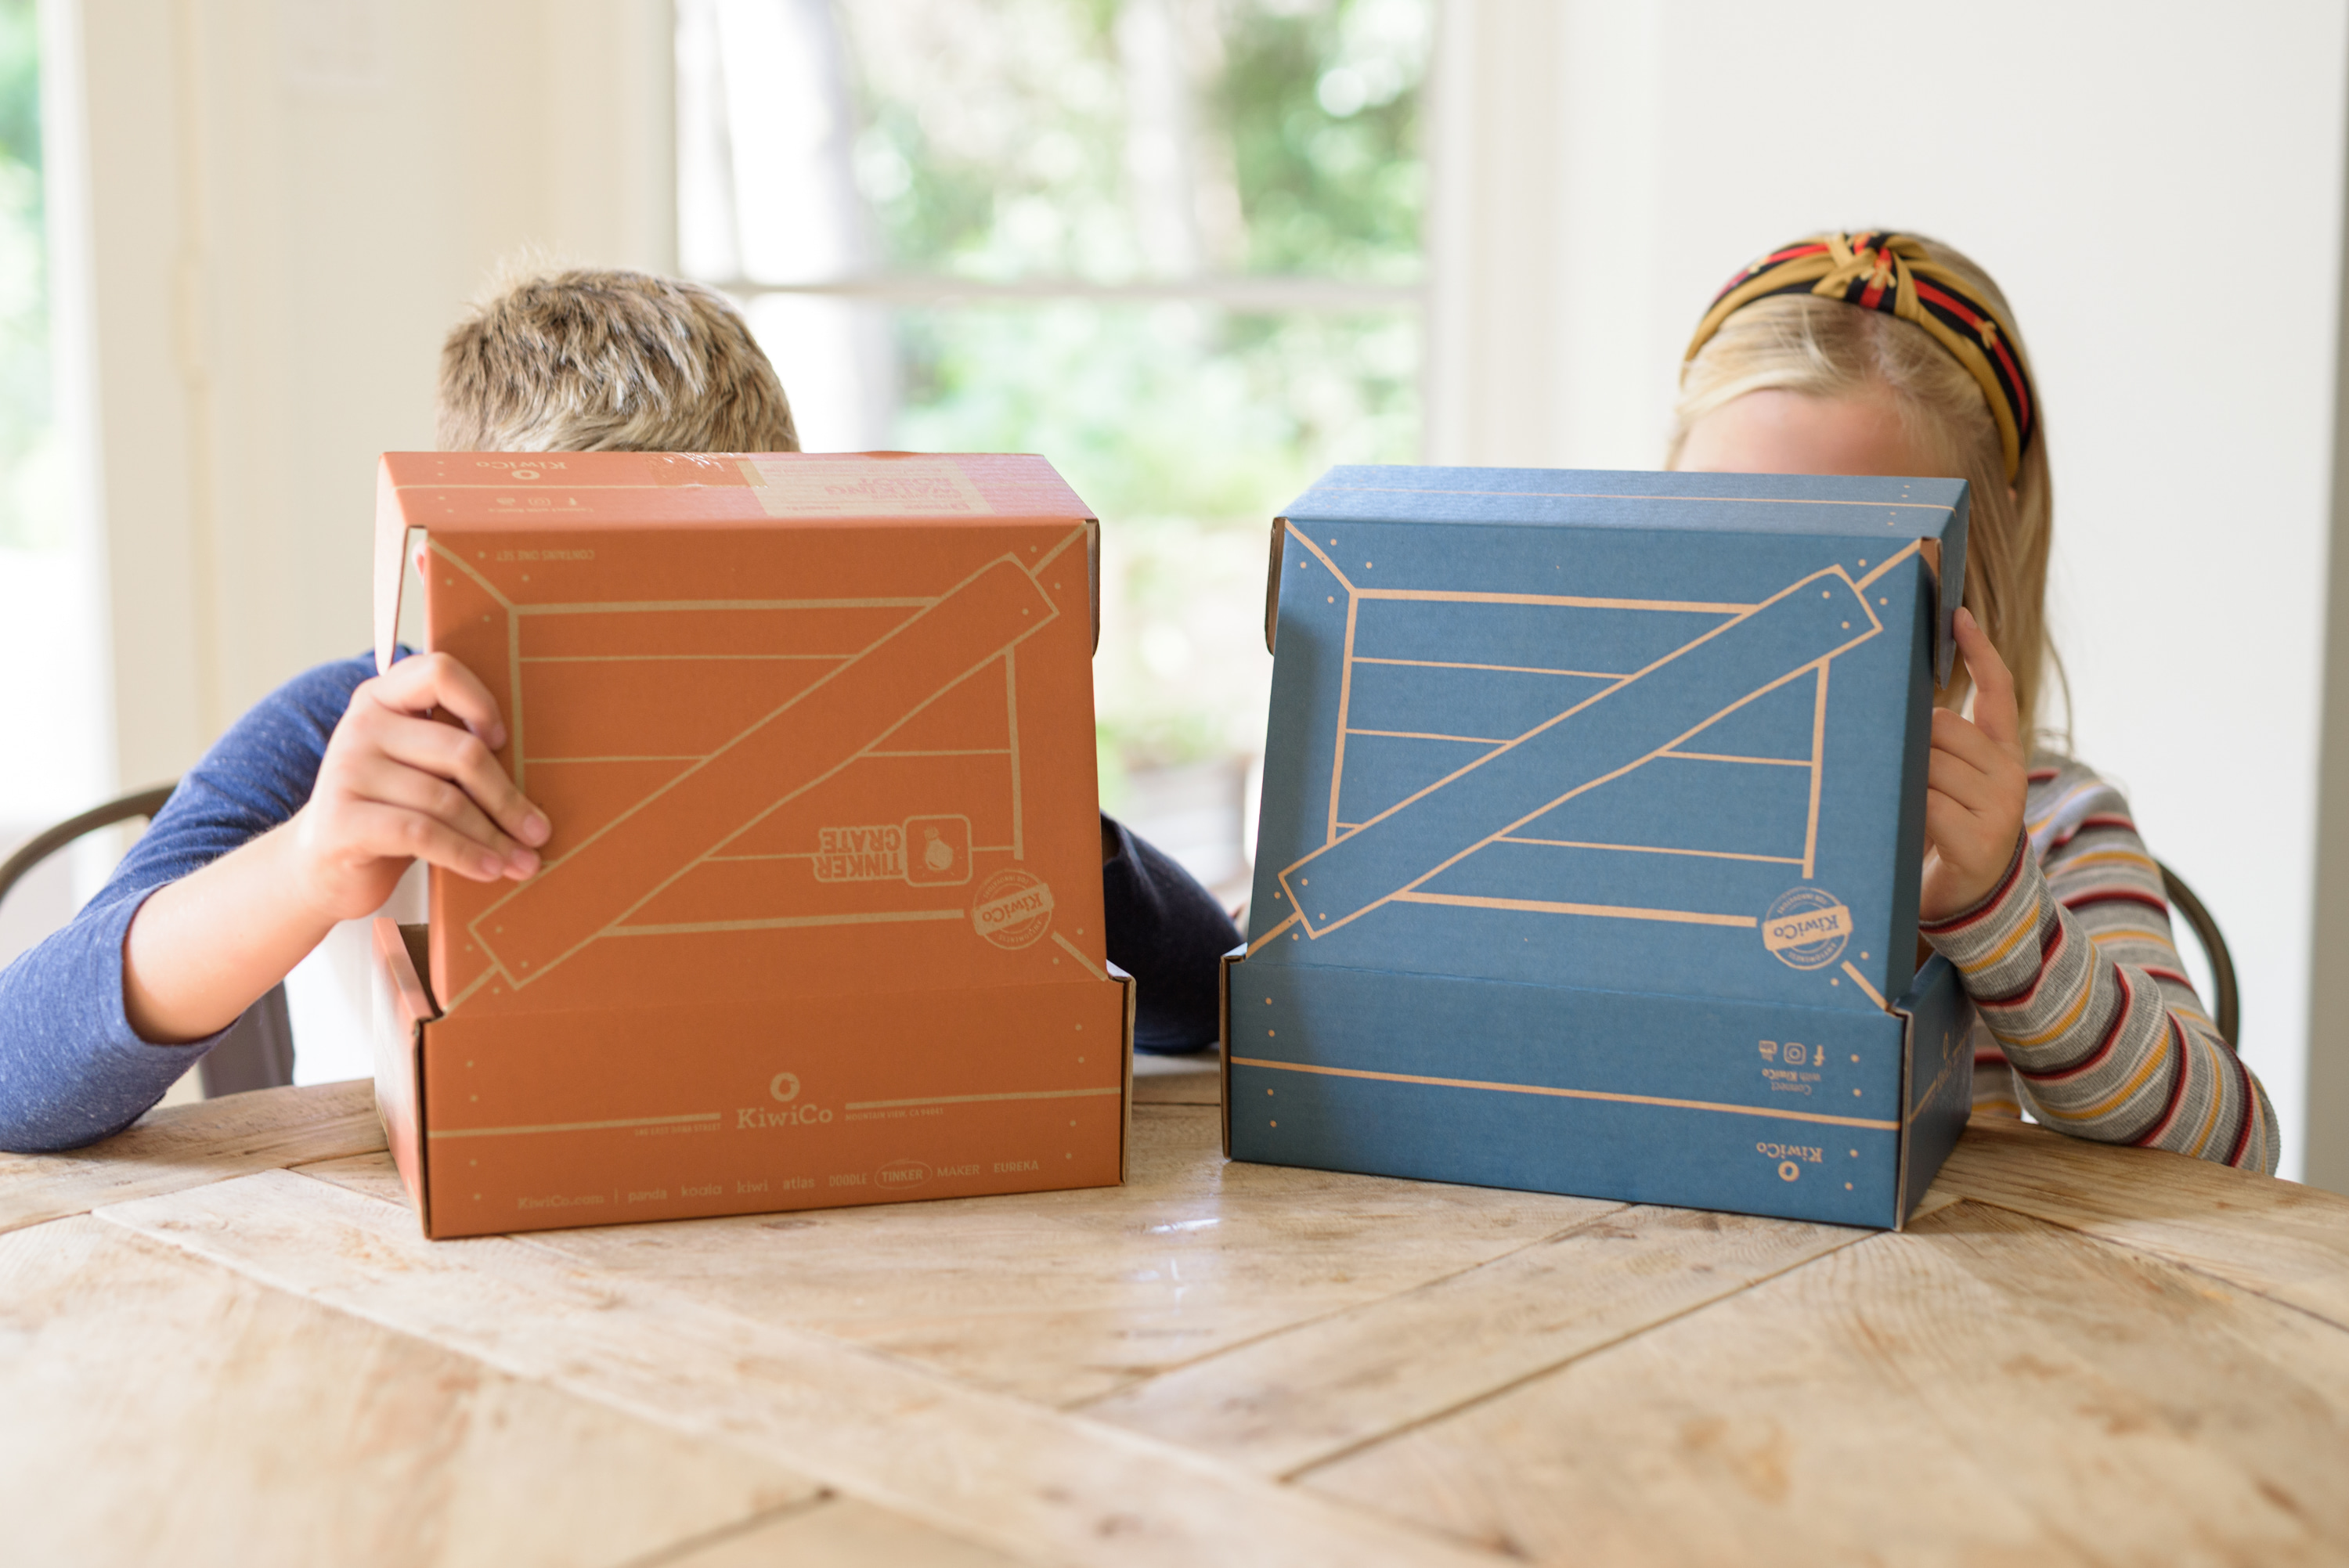 Kiwico Reviews by popular Houston lifestyle blog, Fancy Ashley: image of two kids looking at Kiwico boxes.